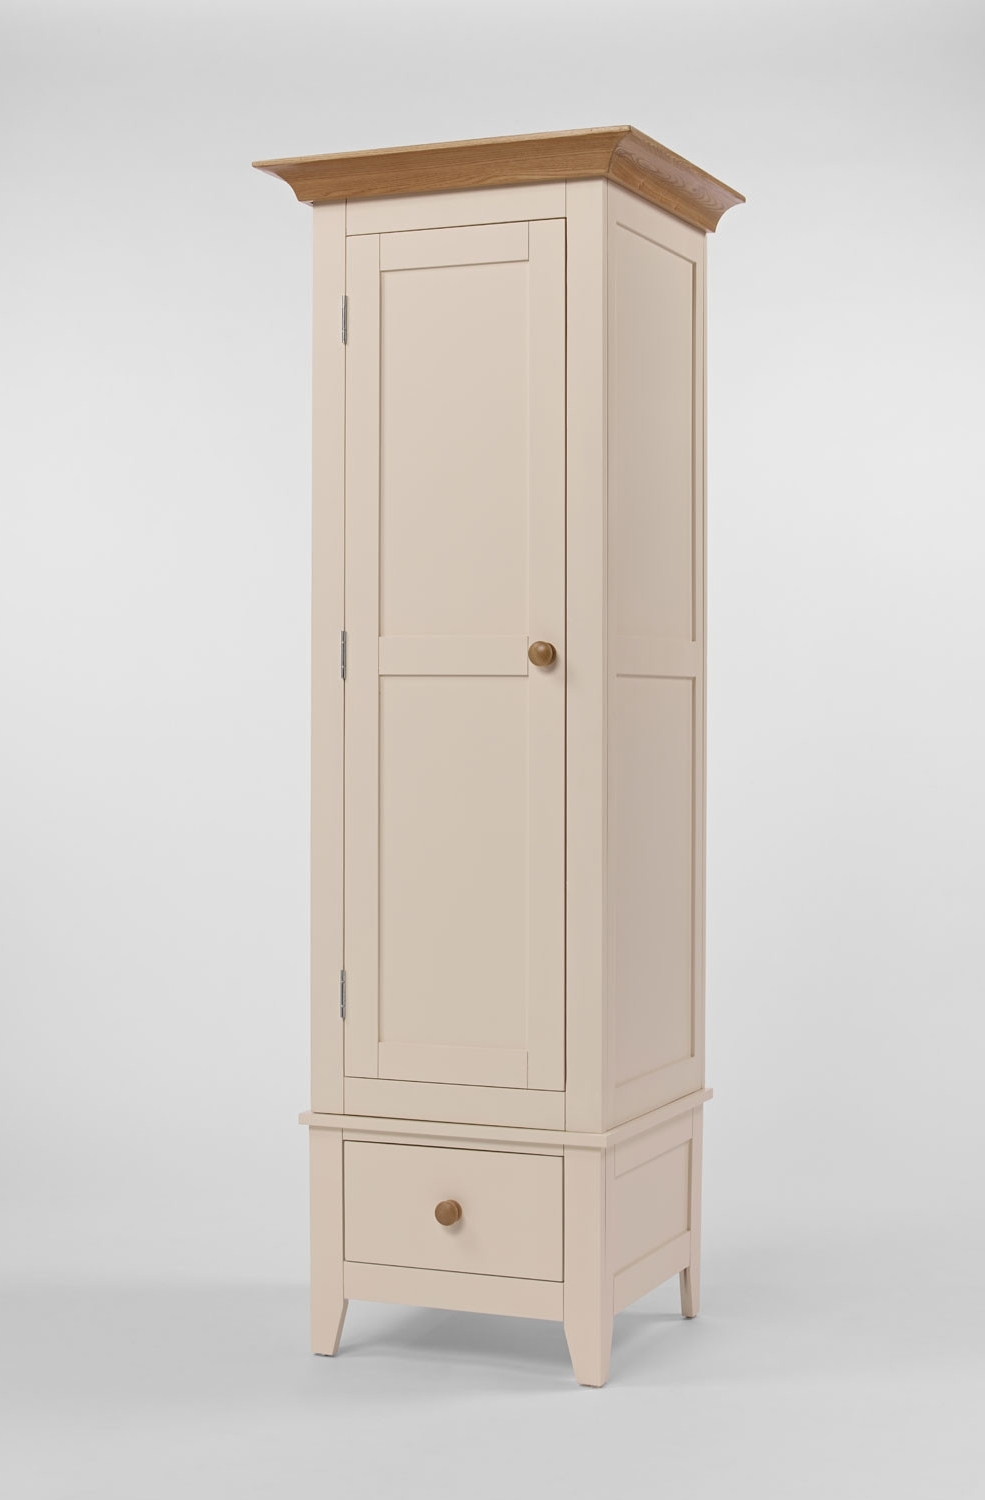 [%Camden Painted Pine & Ash Single Wardrobe. Up To 50% Off! Throughout Current Single Pine Wardrobes|Single Pine Wardrobes Intended For Most Recent Camden Painted Pine & Ash Single Wardrobe. Up To 50% Off!|Favorite Single Pine Wardrobes Within Camden Painted Pine & Ash Single Wardrobe. Up To 50% Off!|Favorite Camden Painted Pine & Ash Single Wardrobe (View 1 of 15)